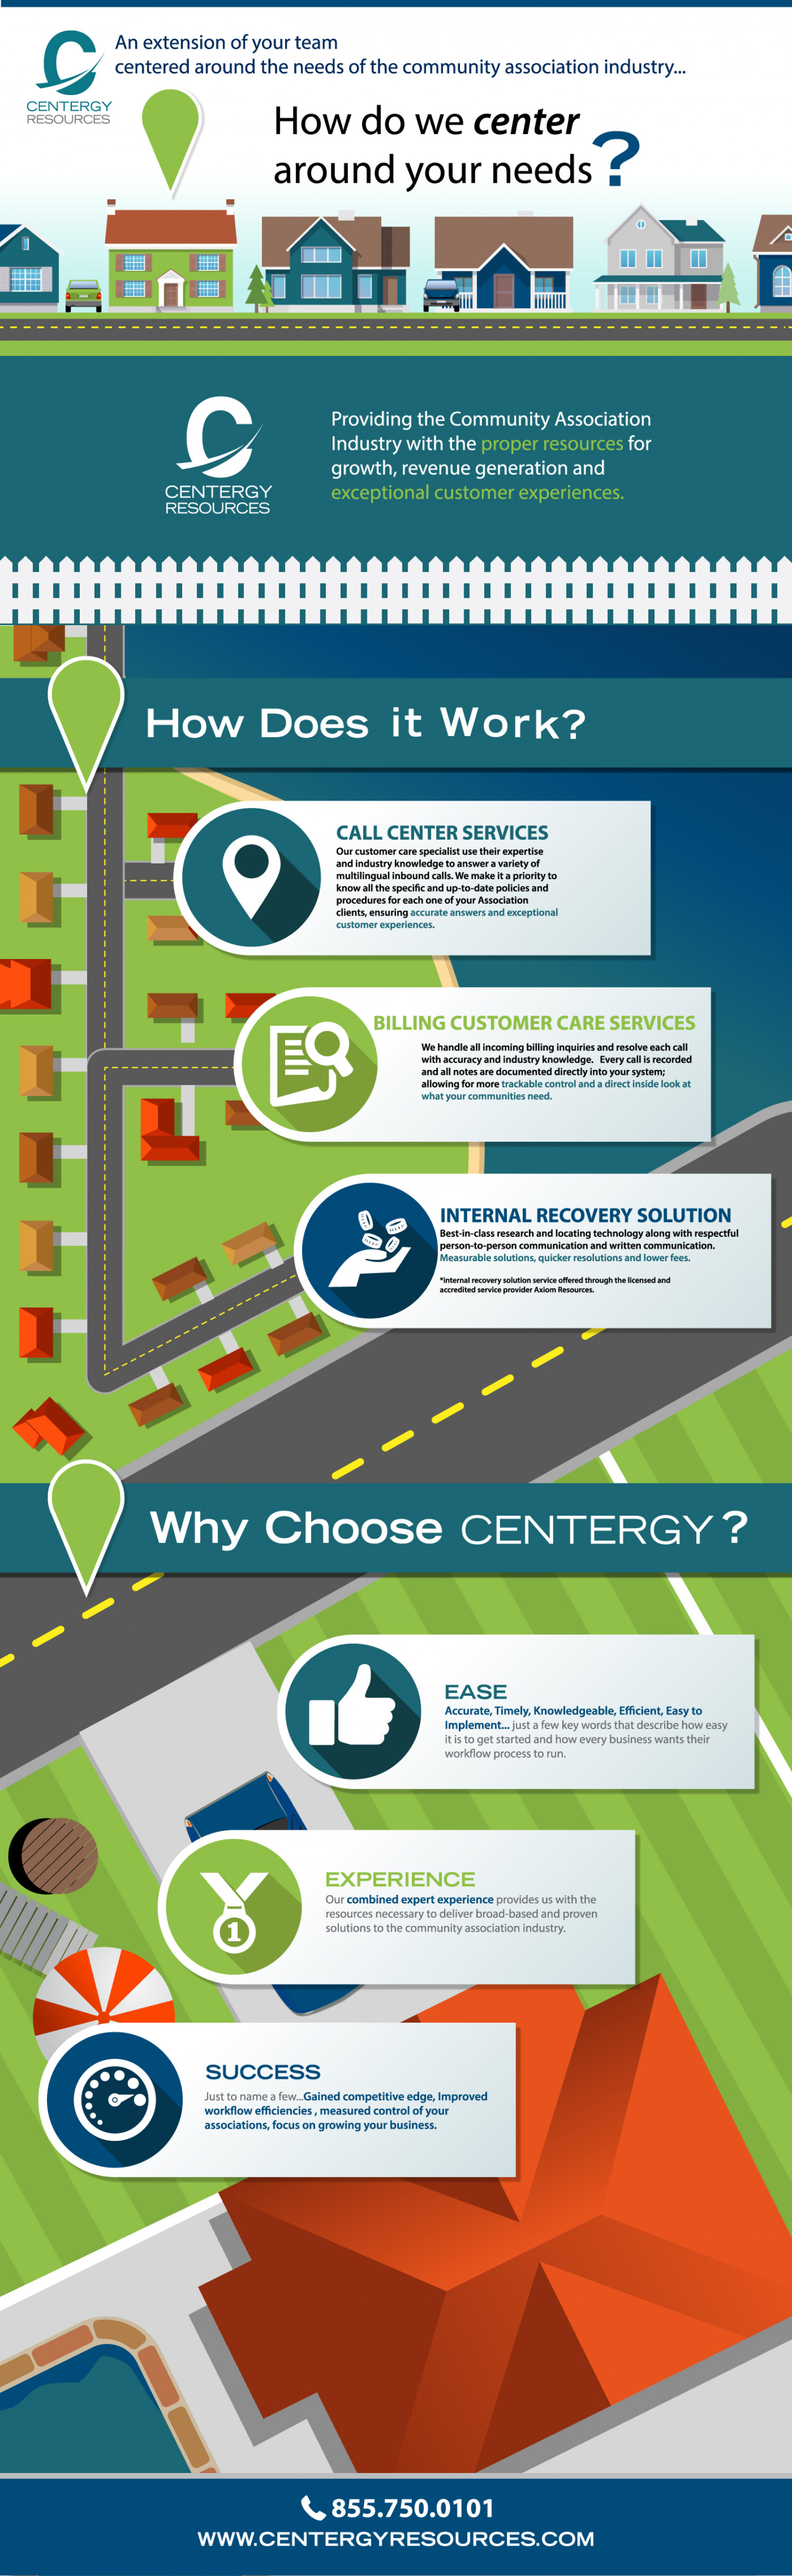 Meeting the Needs of the Community Association Industry Infographic